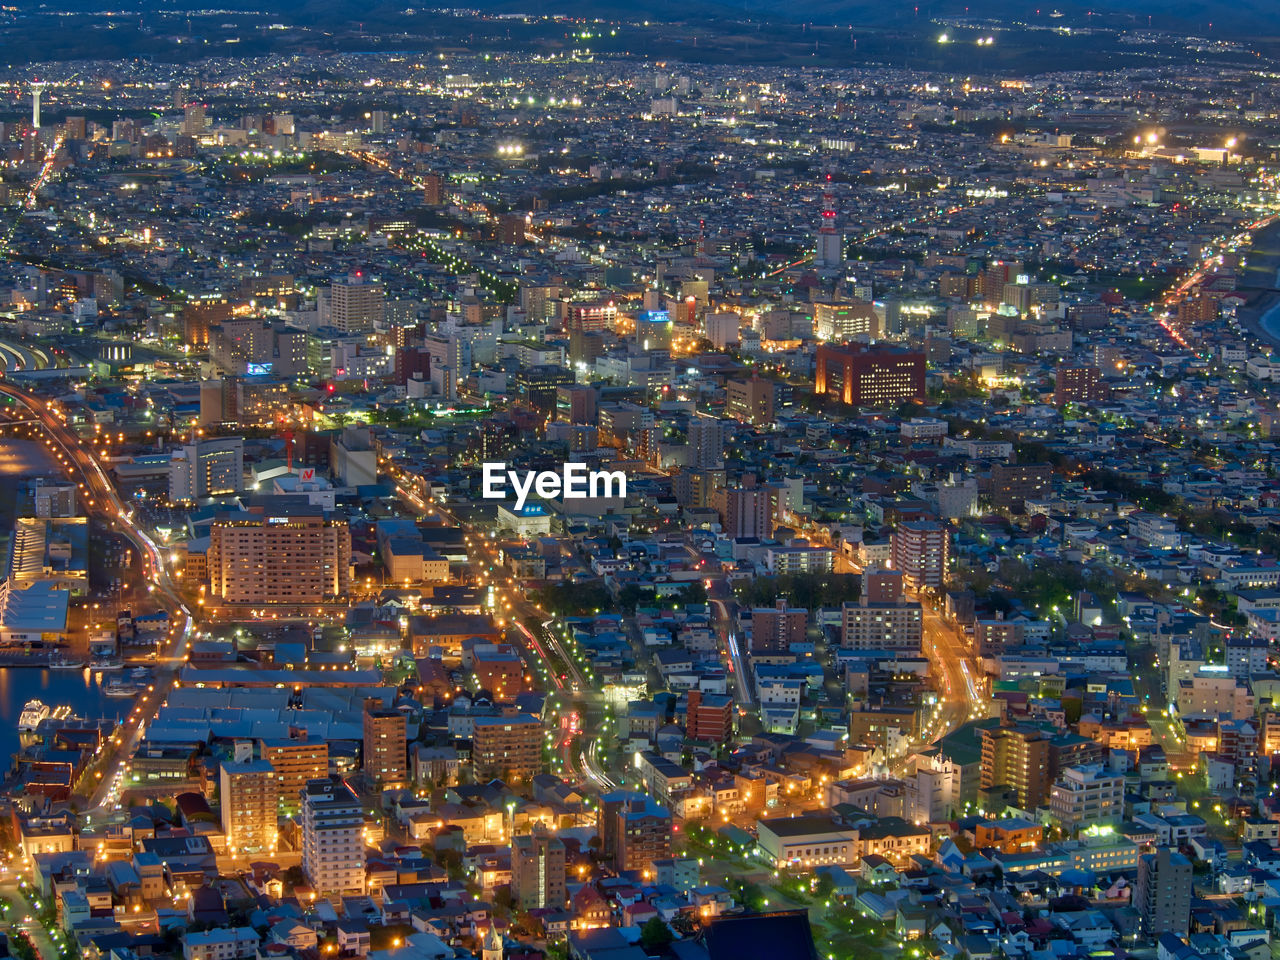 cityscape, city, illuminated, aerial view, architecture, building exterior, city life, night, skyscraper, no people, modern, built structure, outdoors, urban skyline, sky